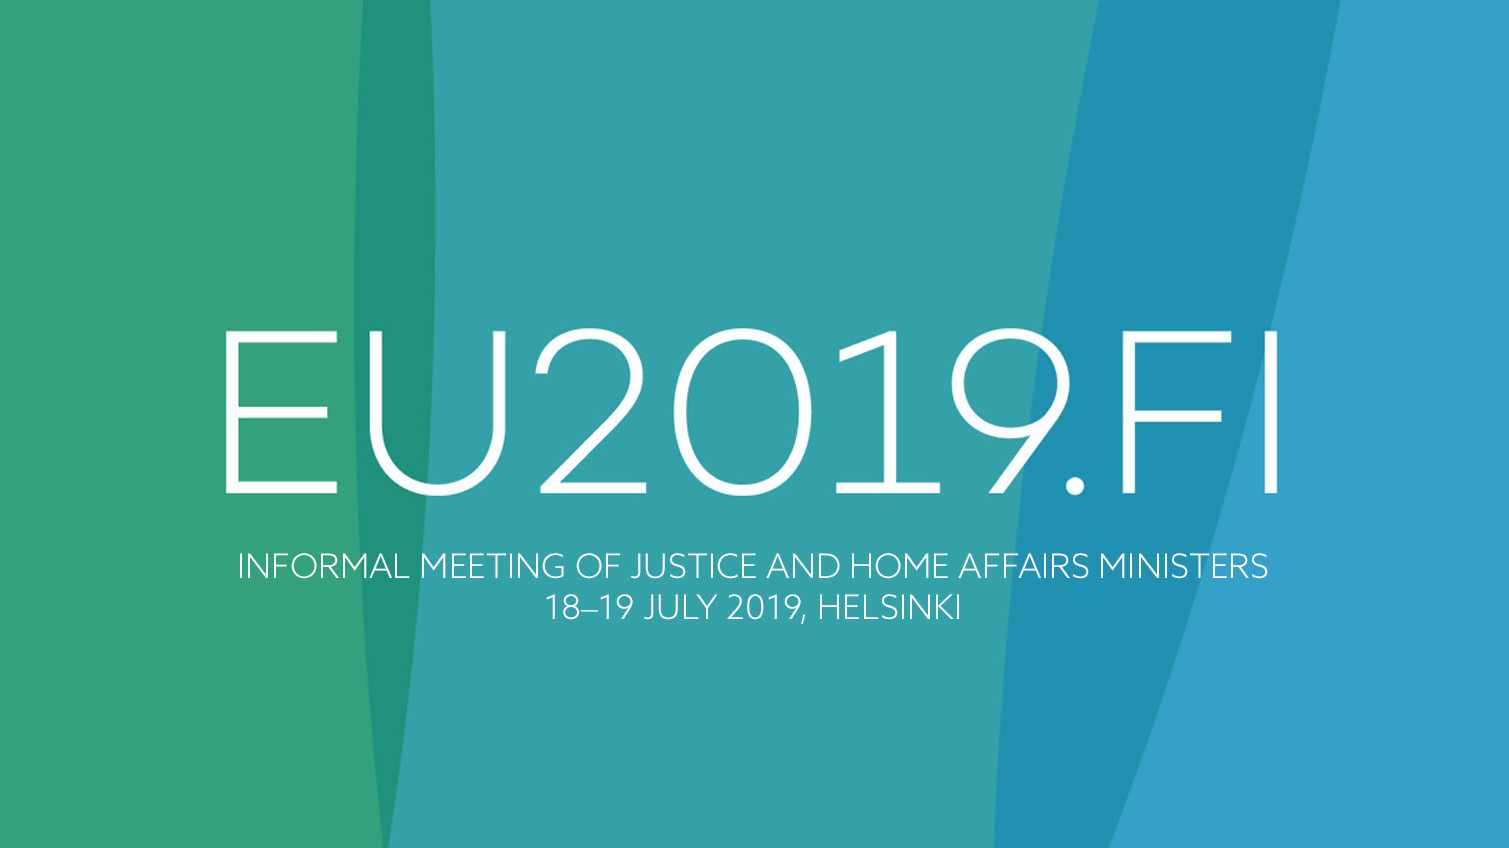 Informal Meeting of Justice and Home Affairs Ministers